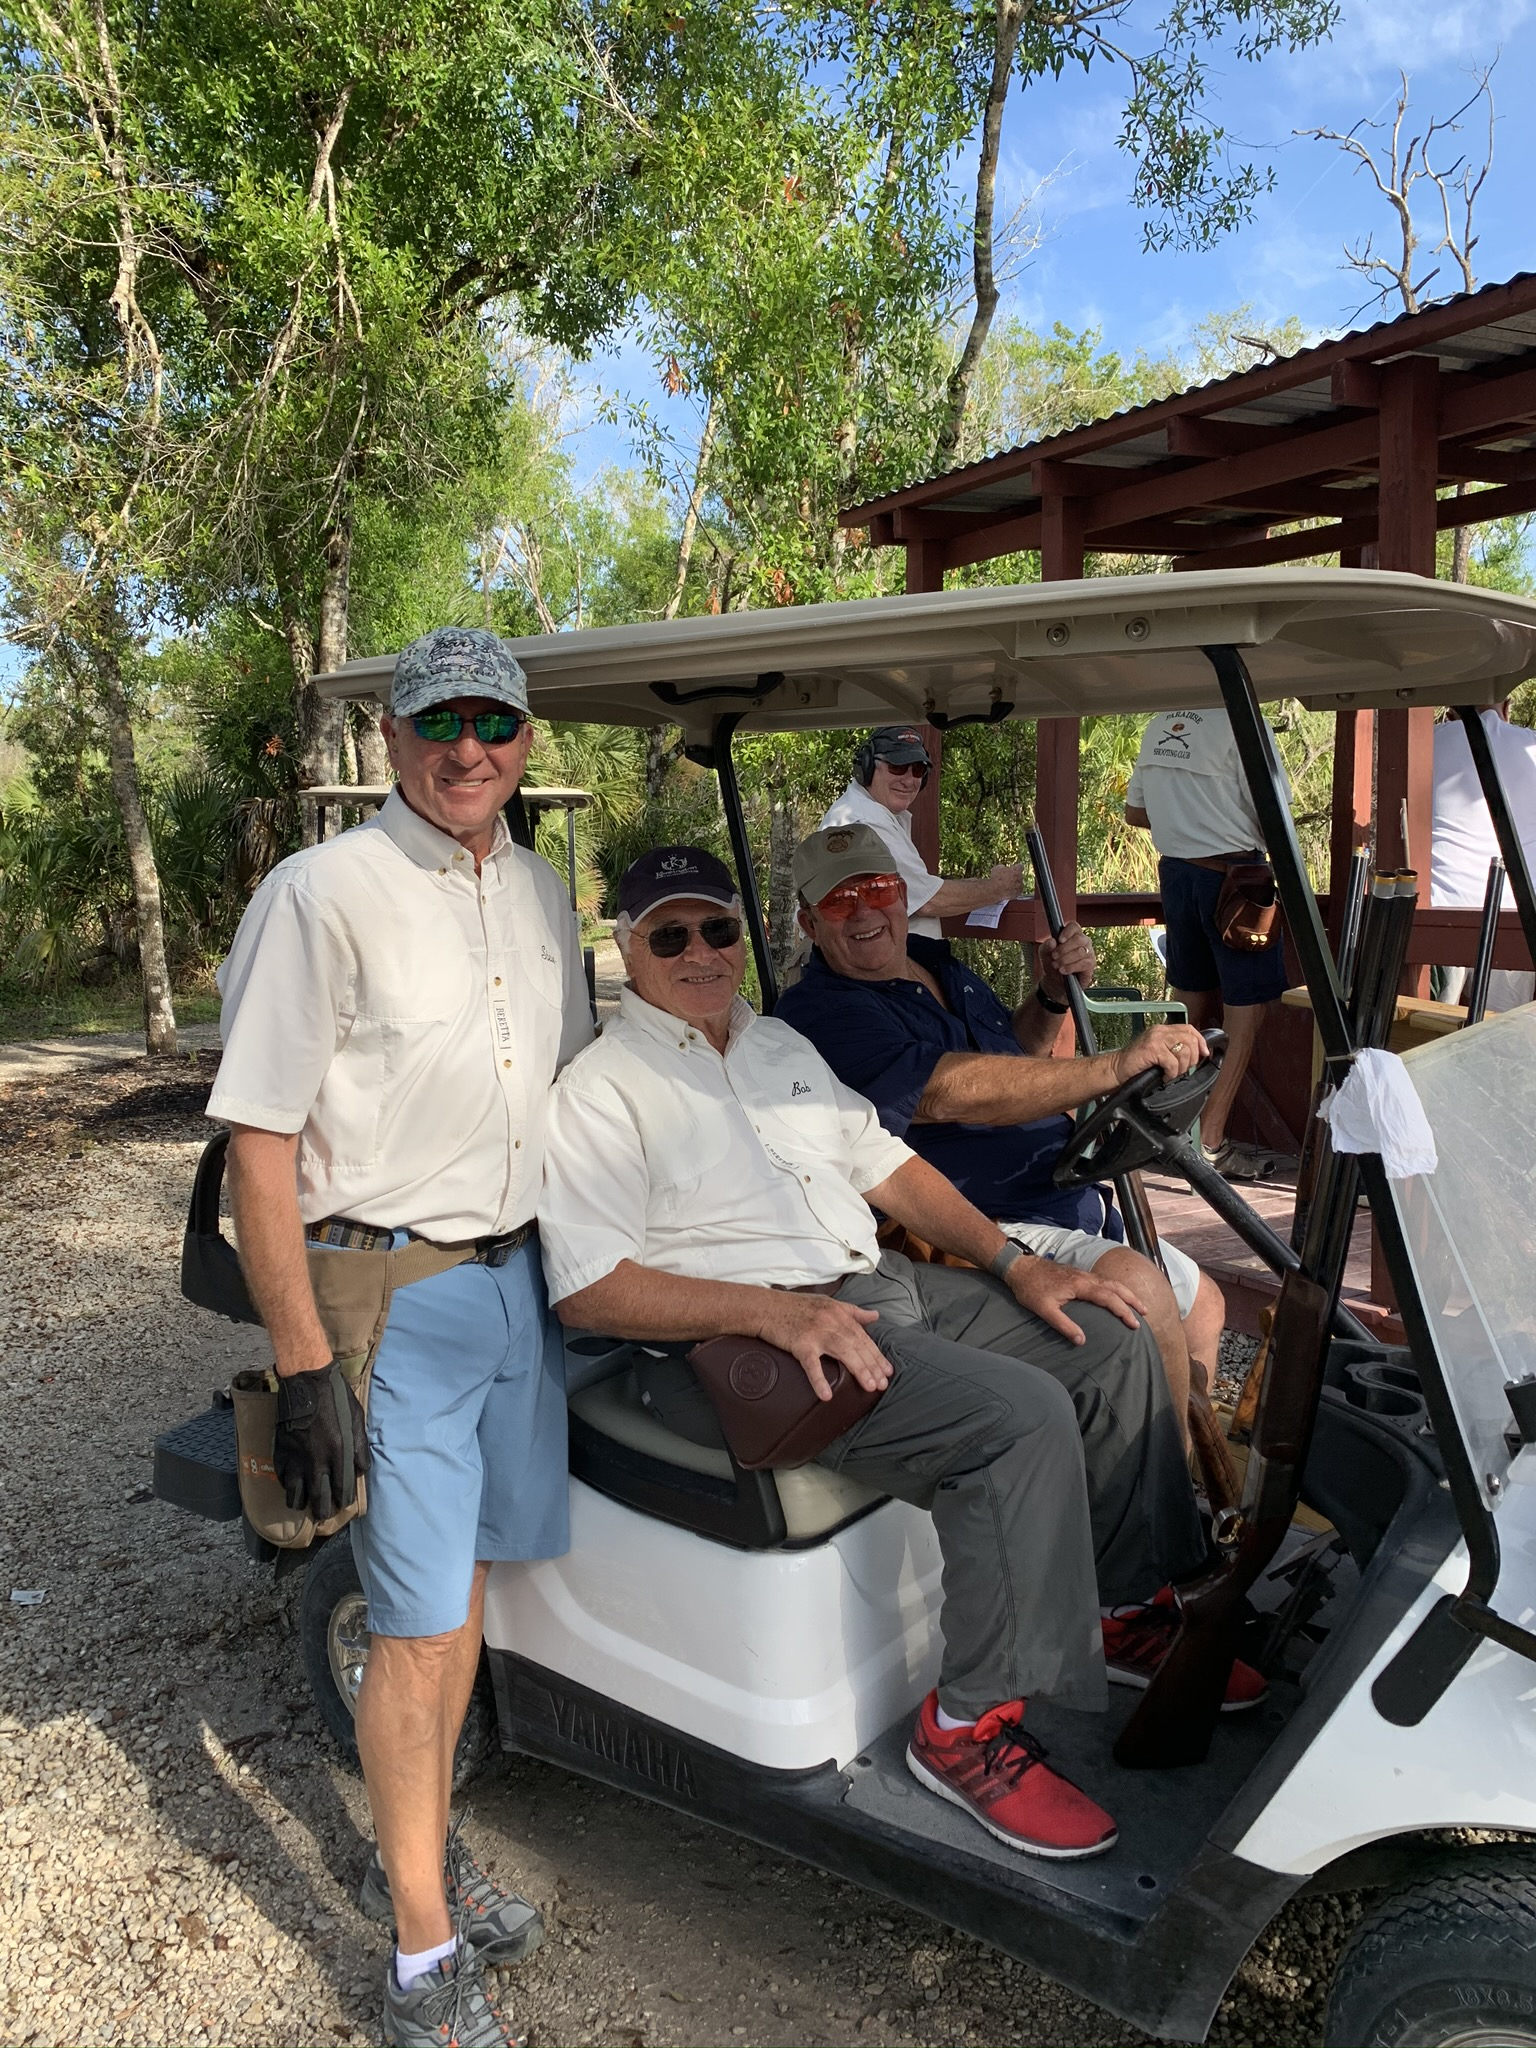 Members on Sporting Clays course at Members' party 2020 at Gulf Coast Clays gun club, Naples, FL